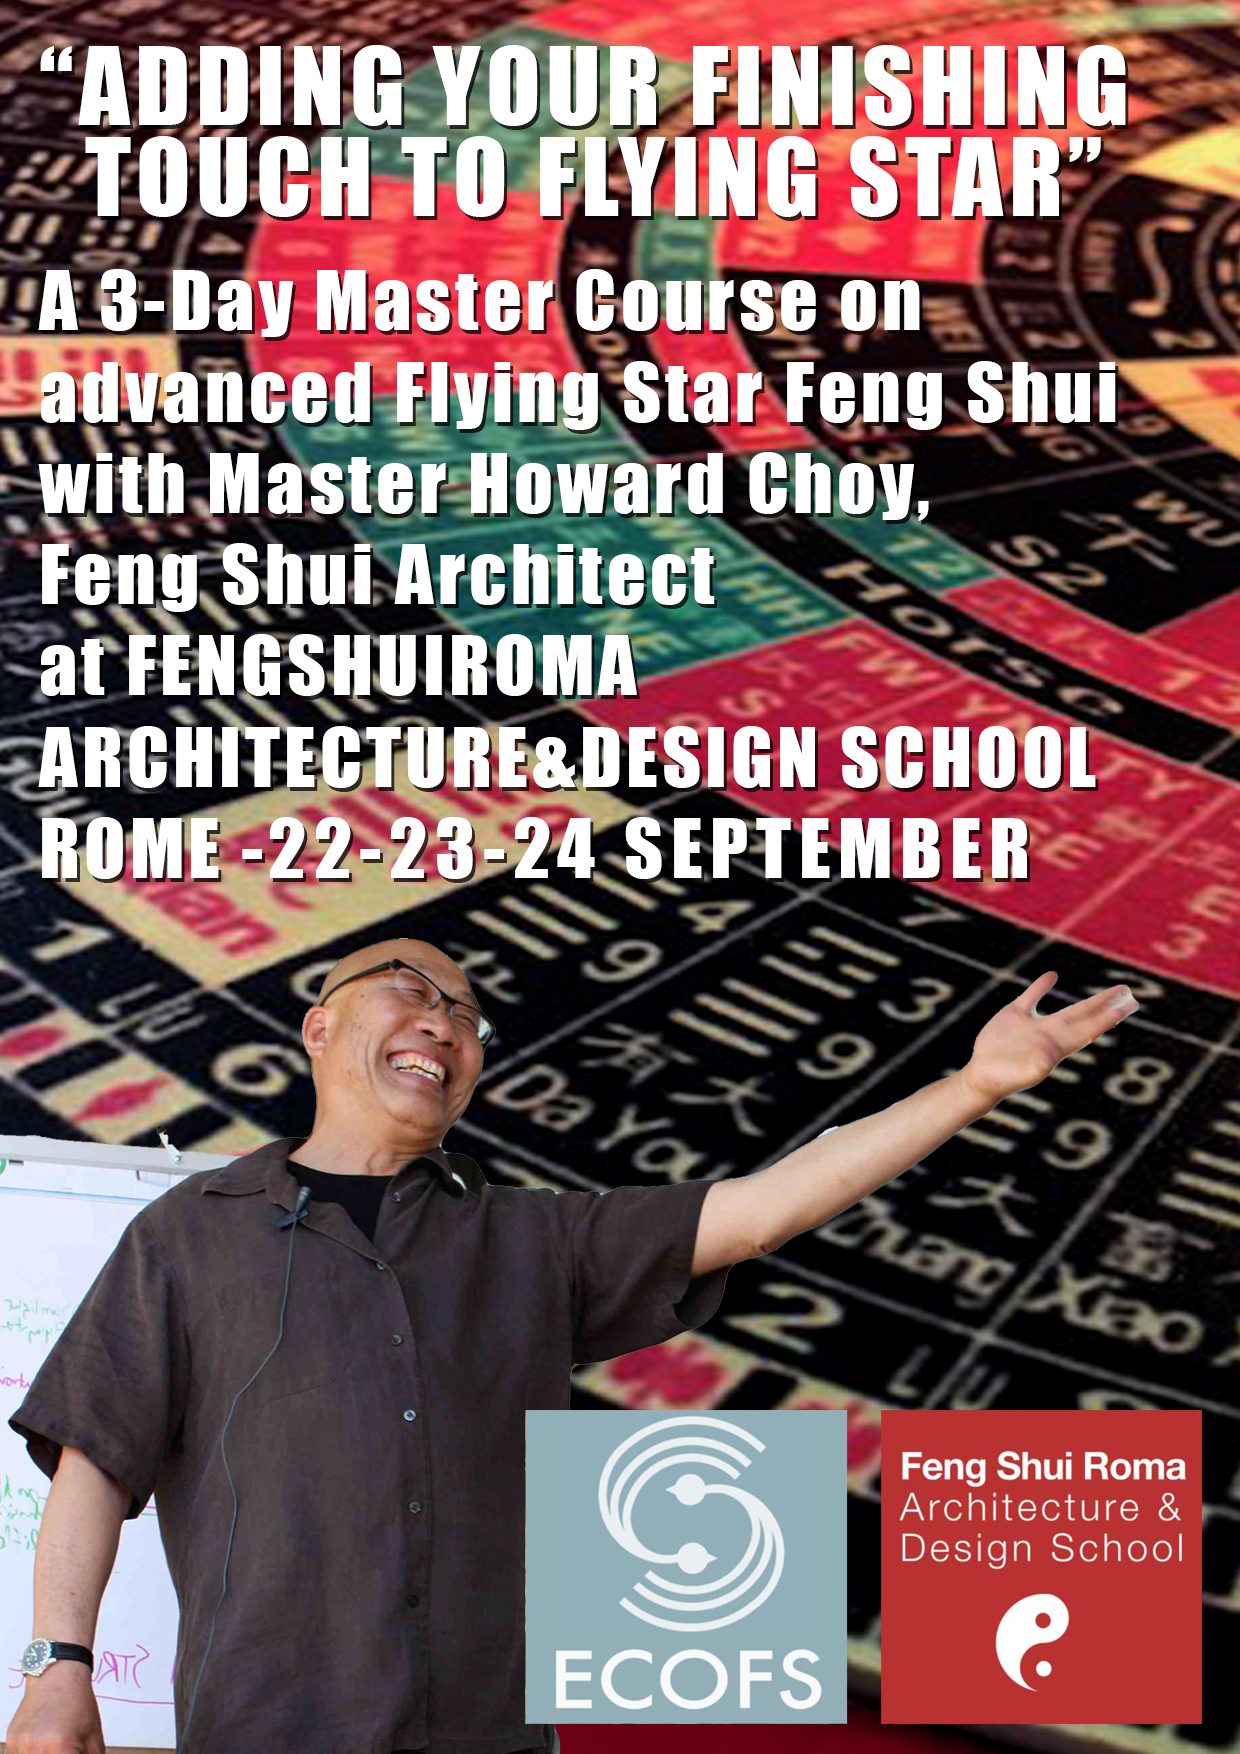 Adding Your Finishing Touch to Flying Star with Master Howard Choy